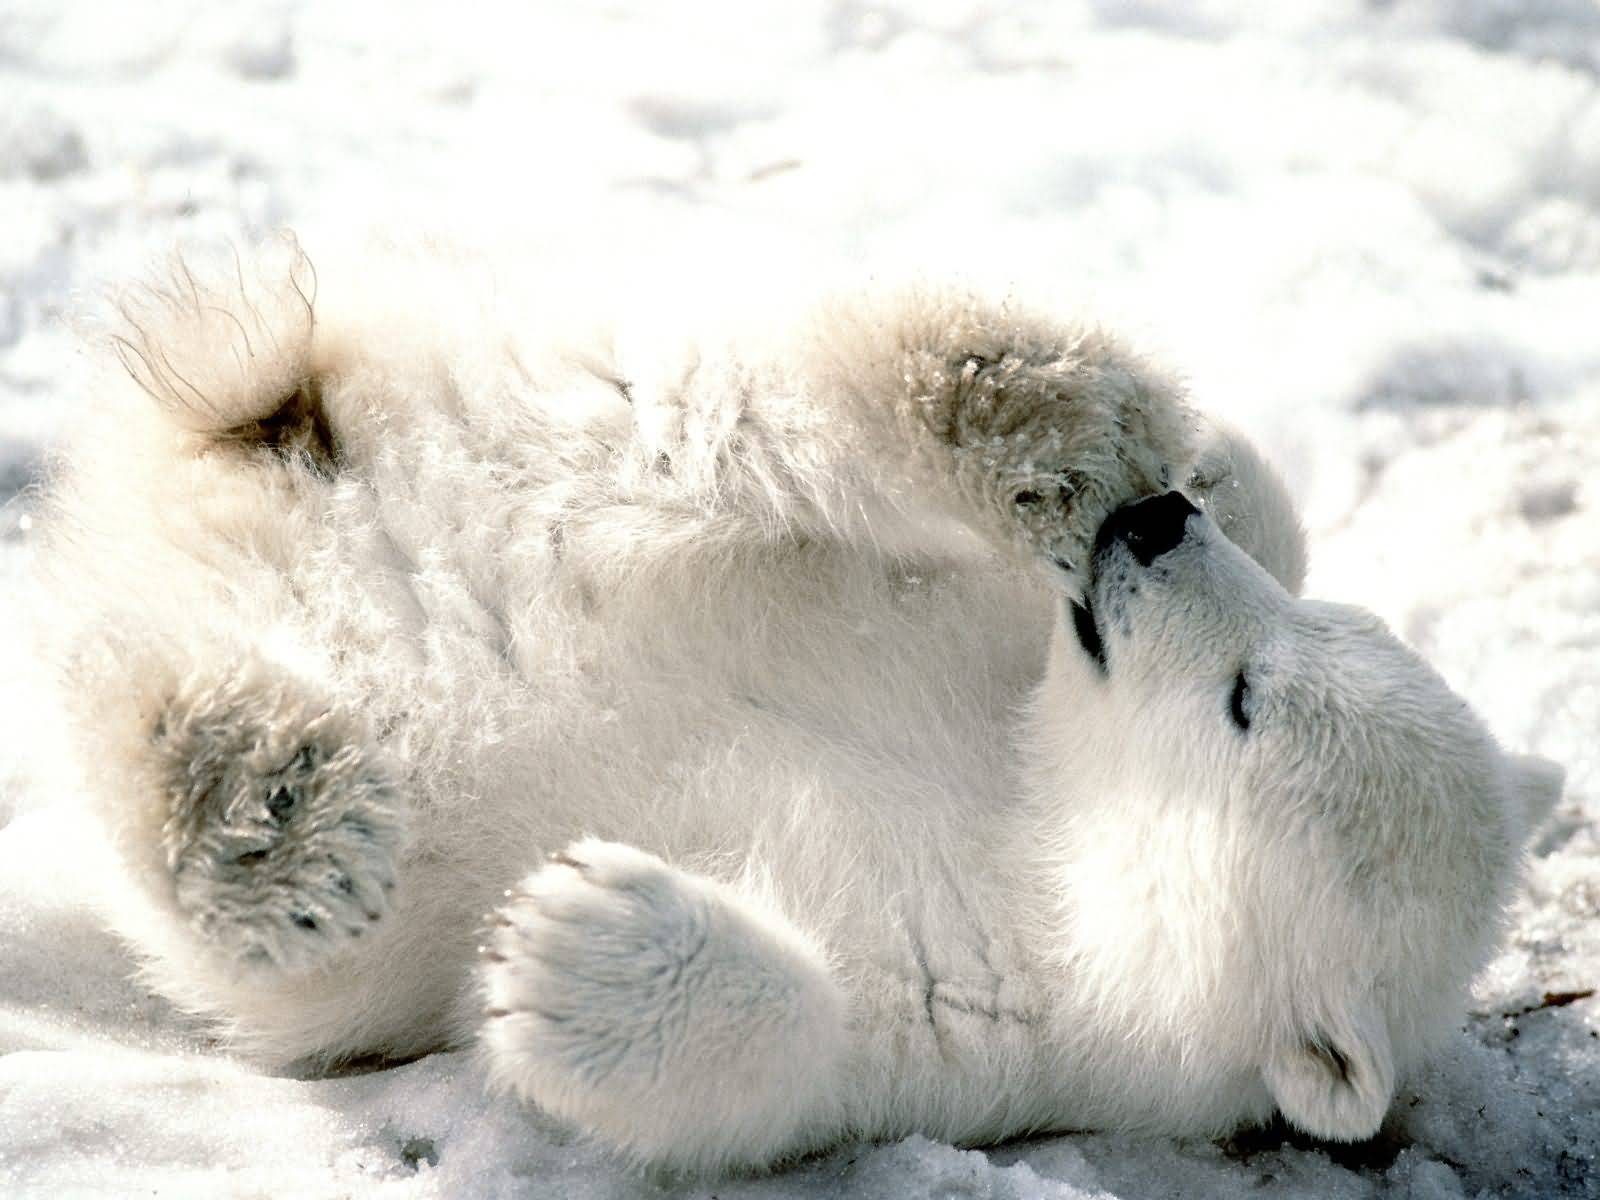 http://naturescrusaders.files.wordpress.com/2009/04/playful_baby_polar_bear-1600x1200-bandwidth-thief.jpg